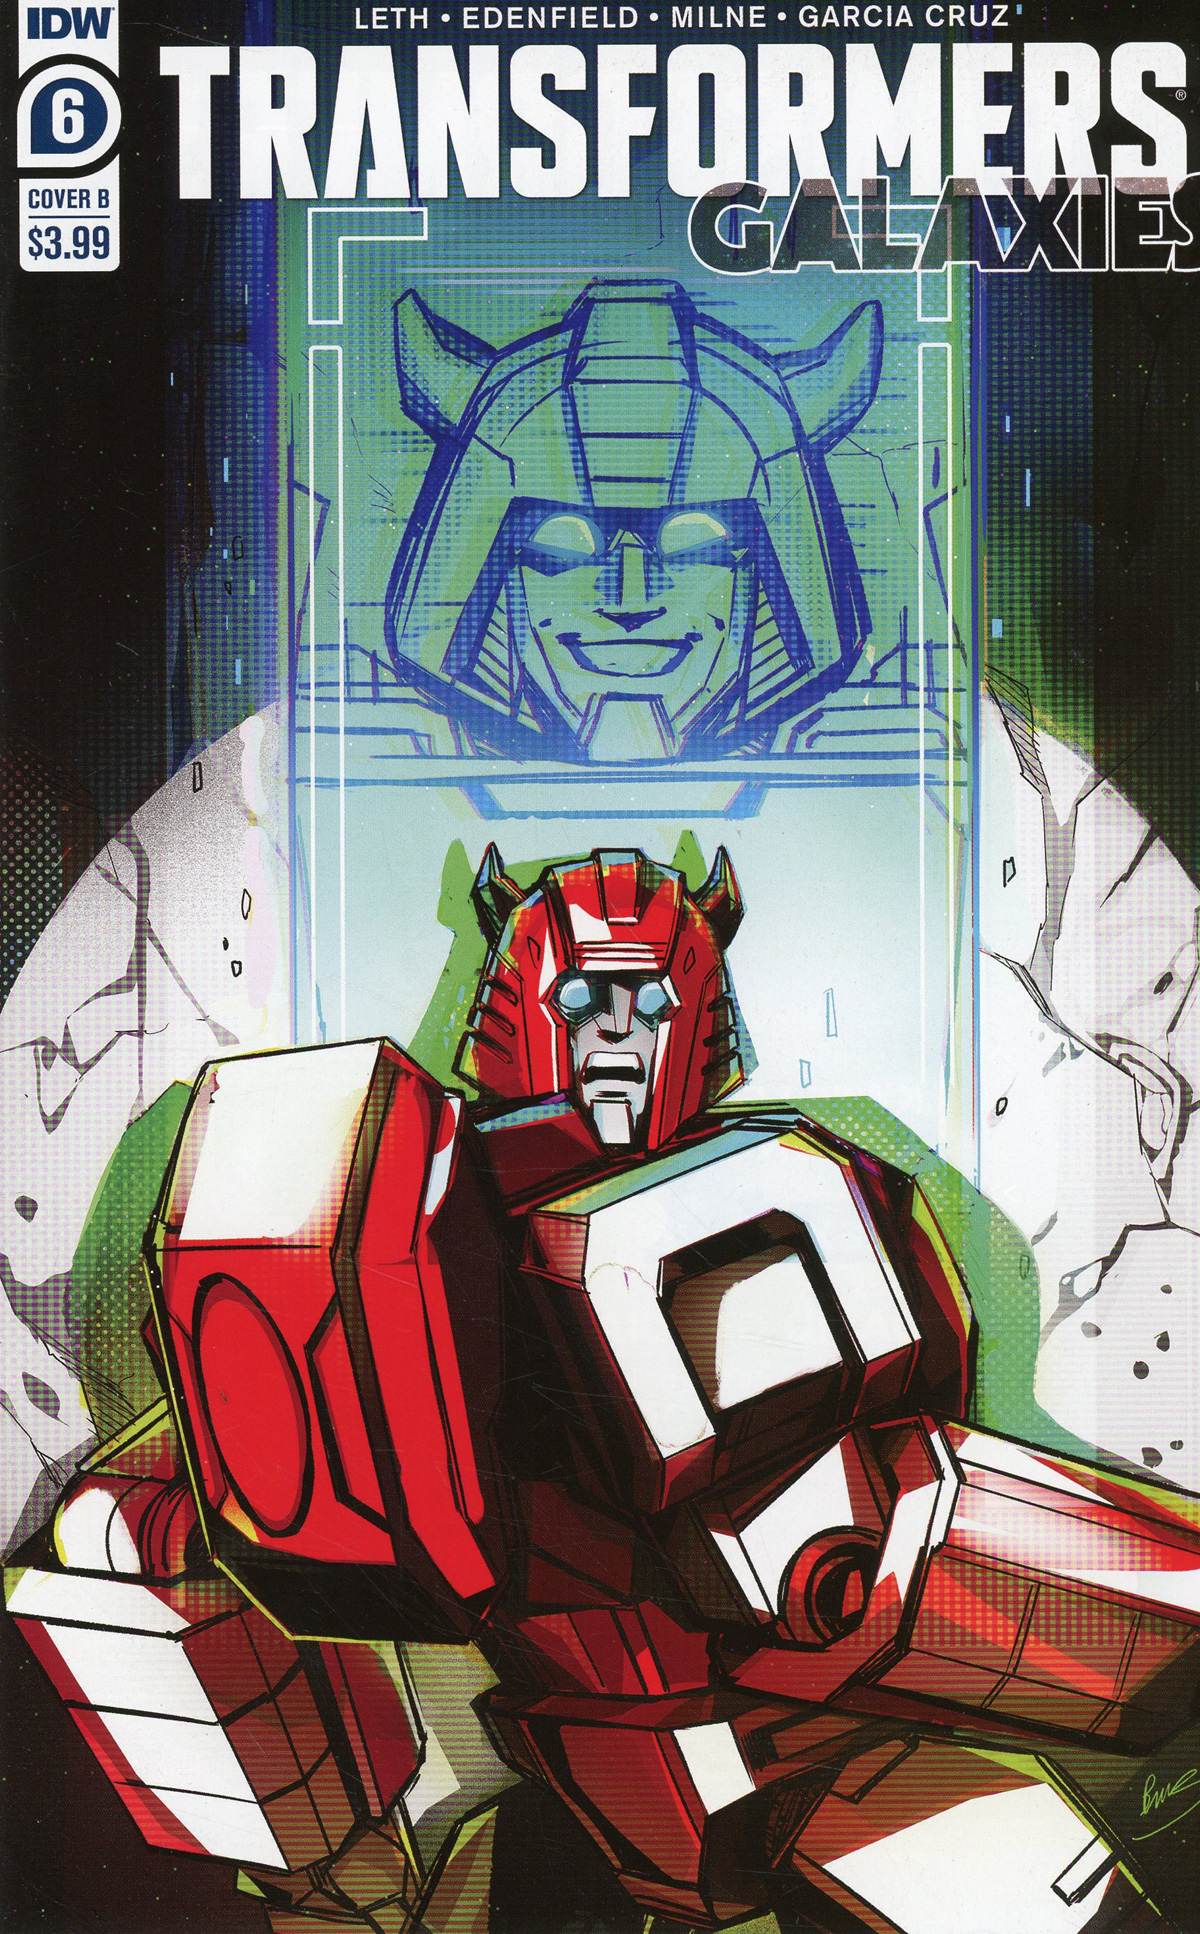 Transformers Galaxies #6 Cover B Variant Bethany McGuire-Smith Cover